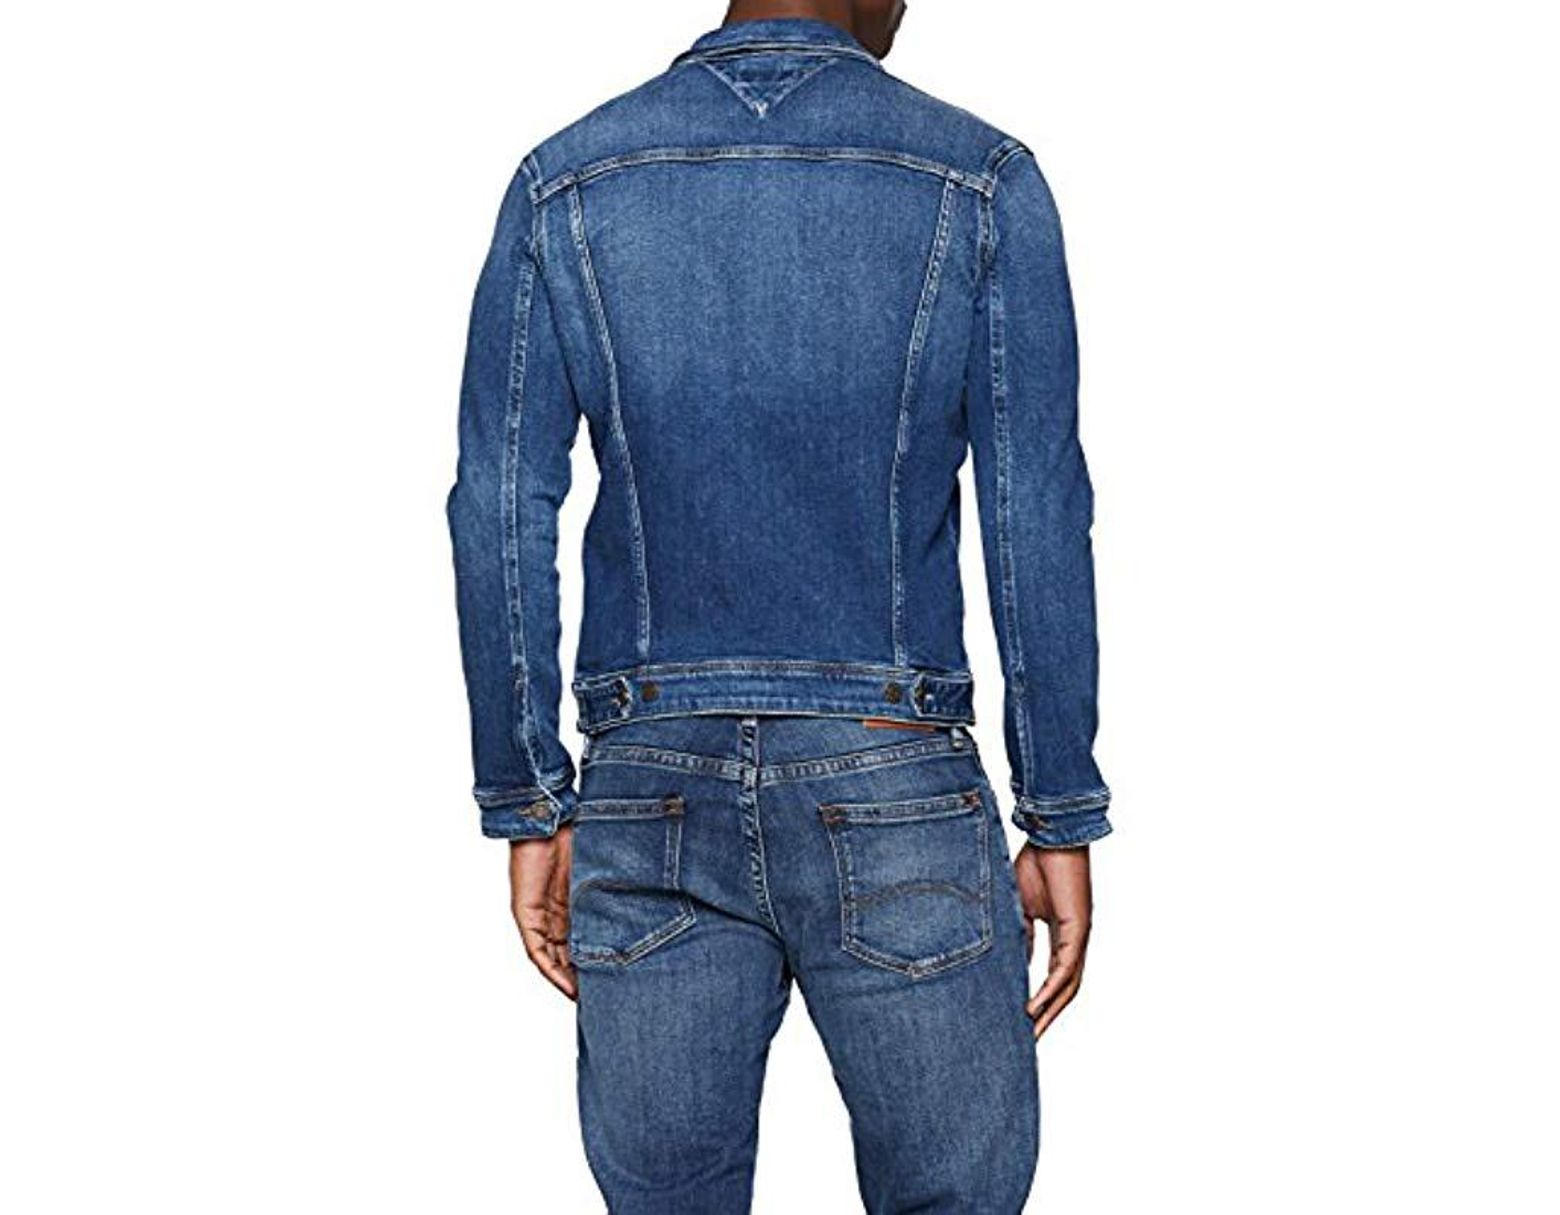 601e946a Tommy Hilfiger Jean Jacket Classic Denim Trucker in Blue for Men - Lyst